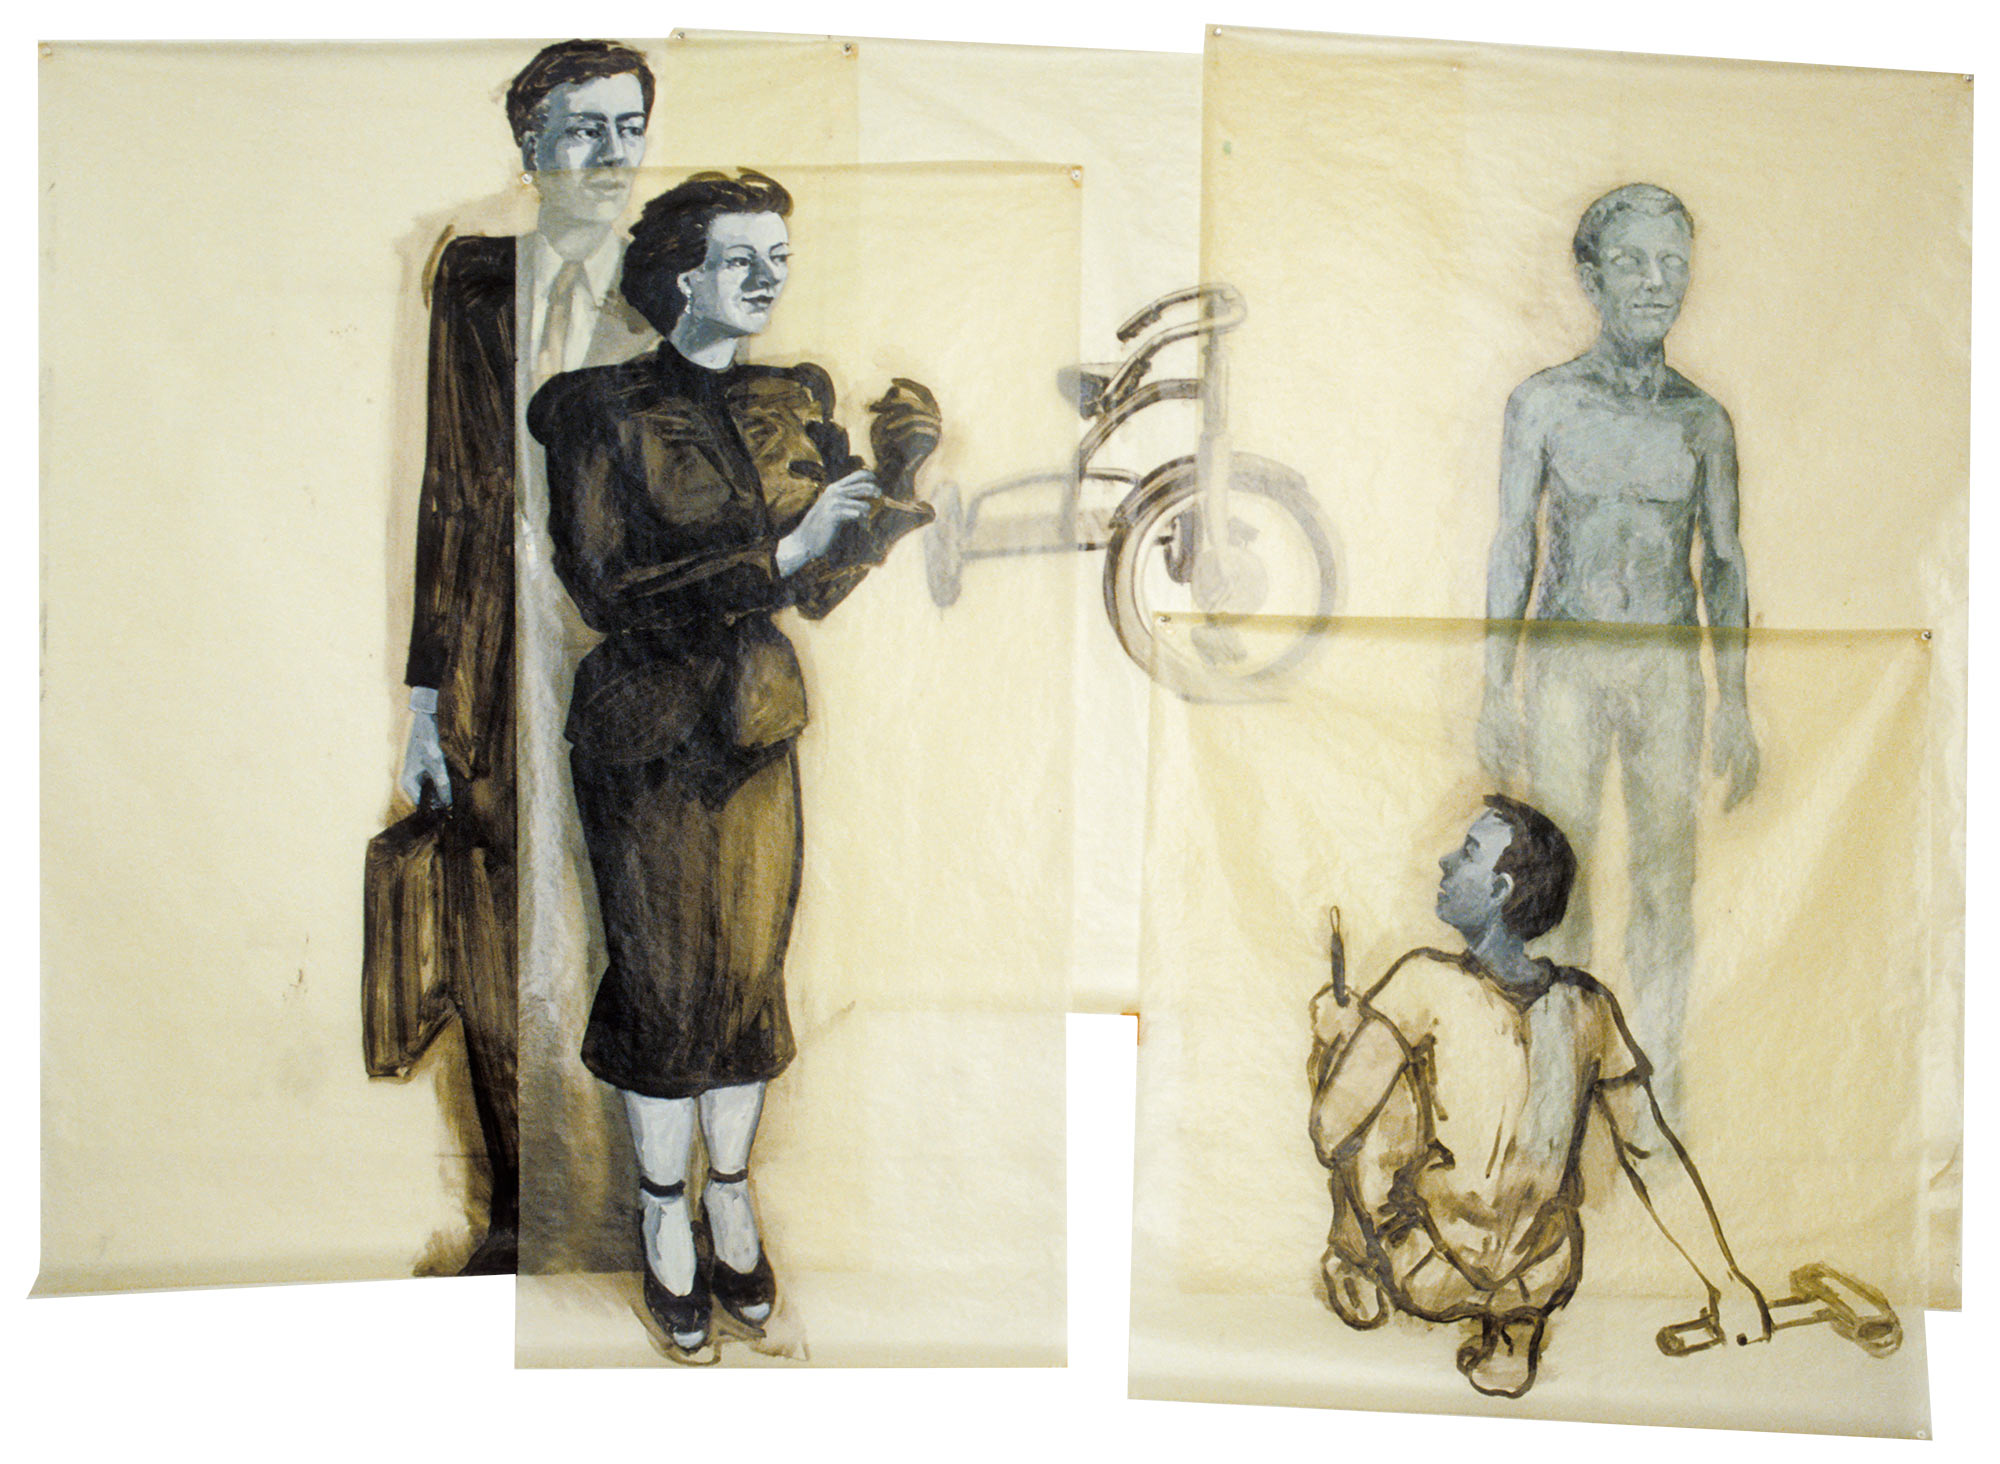 The Critics, 1979. Oil on Glassine. 72 x 121 in. (183 x 307 cm.)